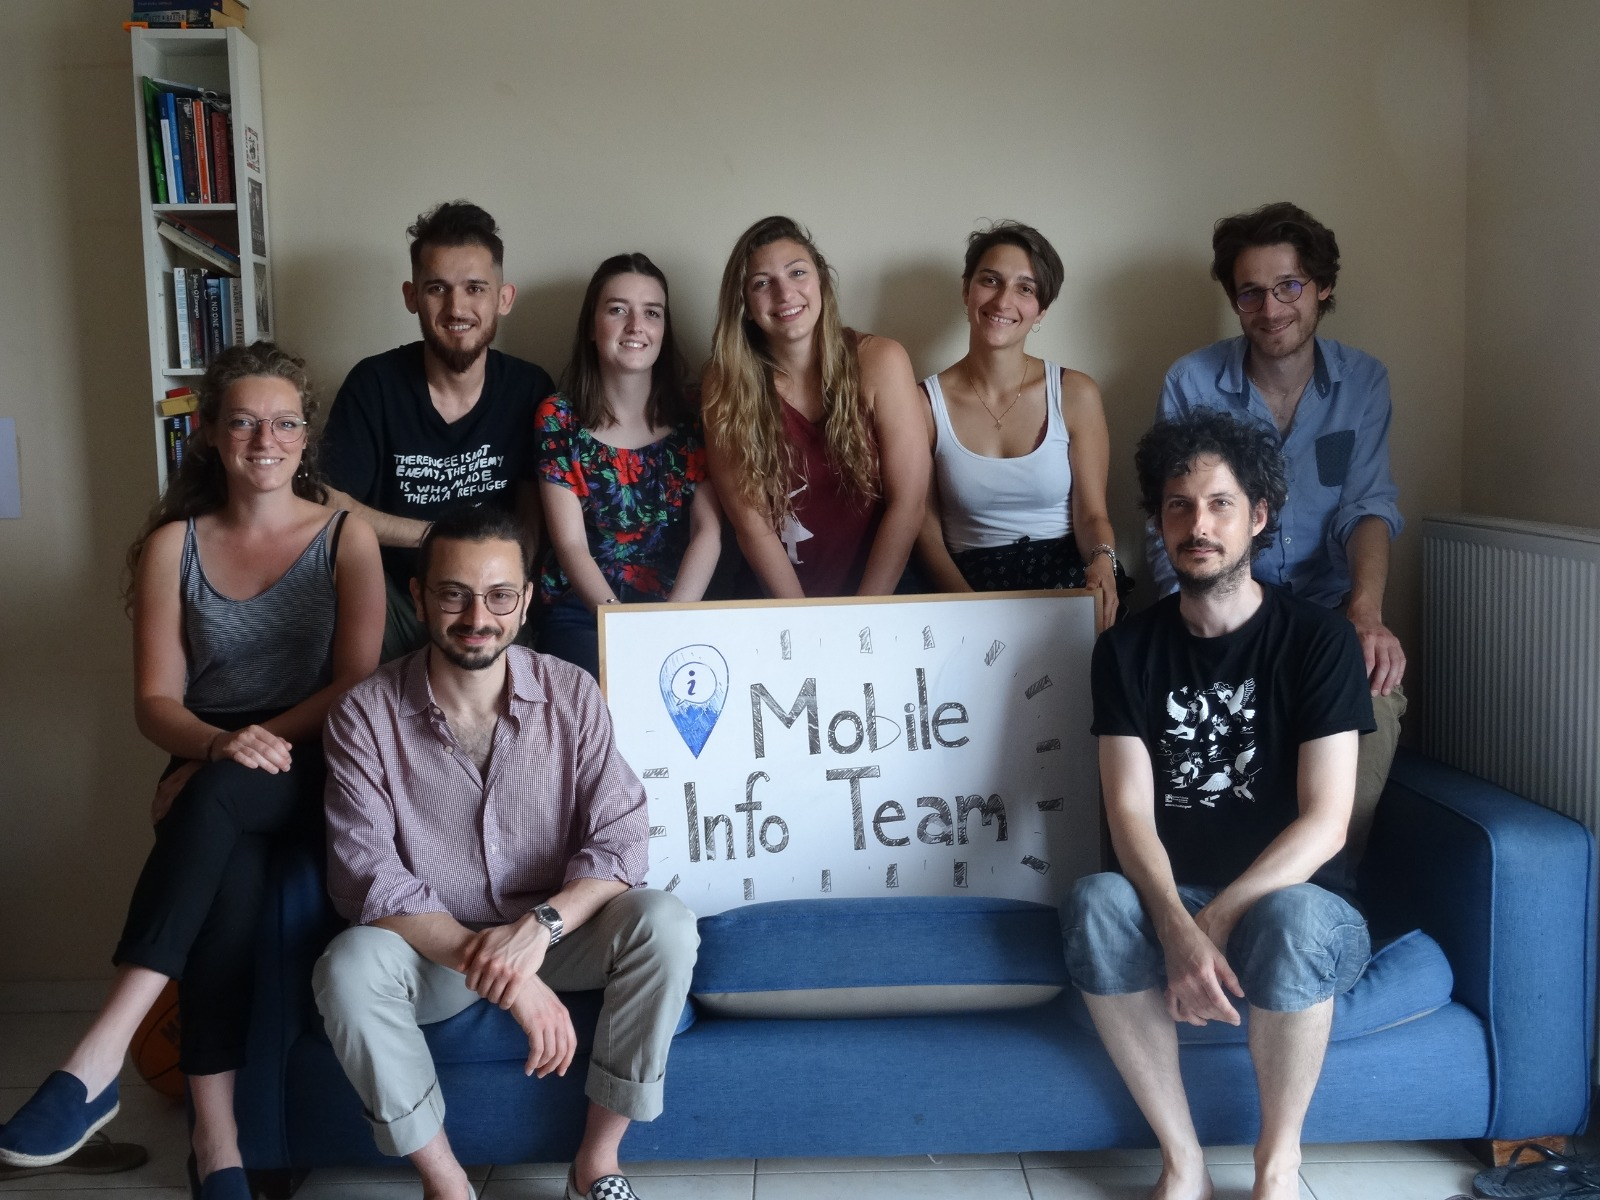 New faces in the Mobile Info Team -